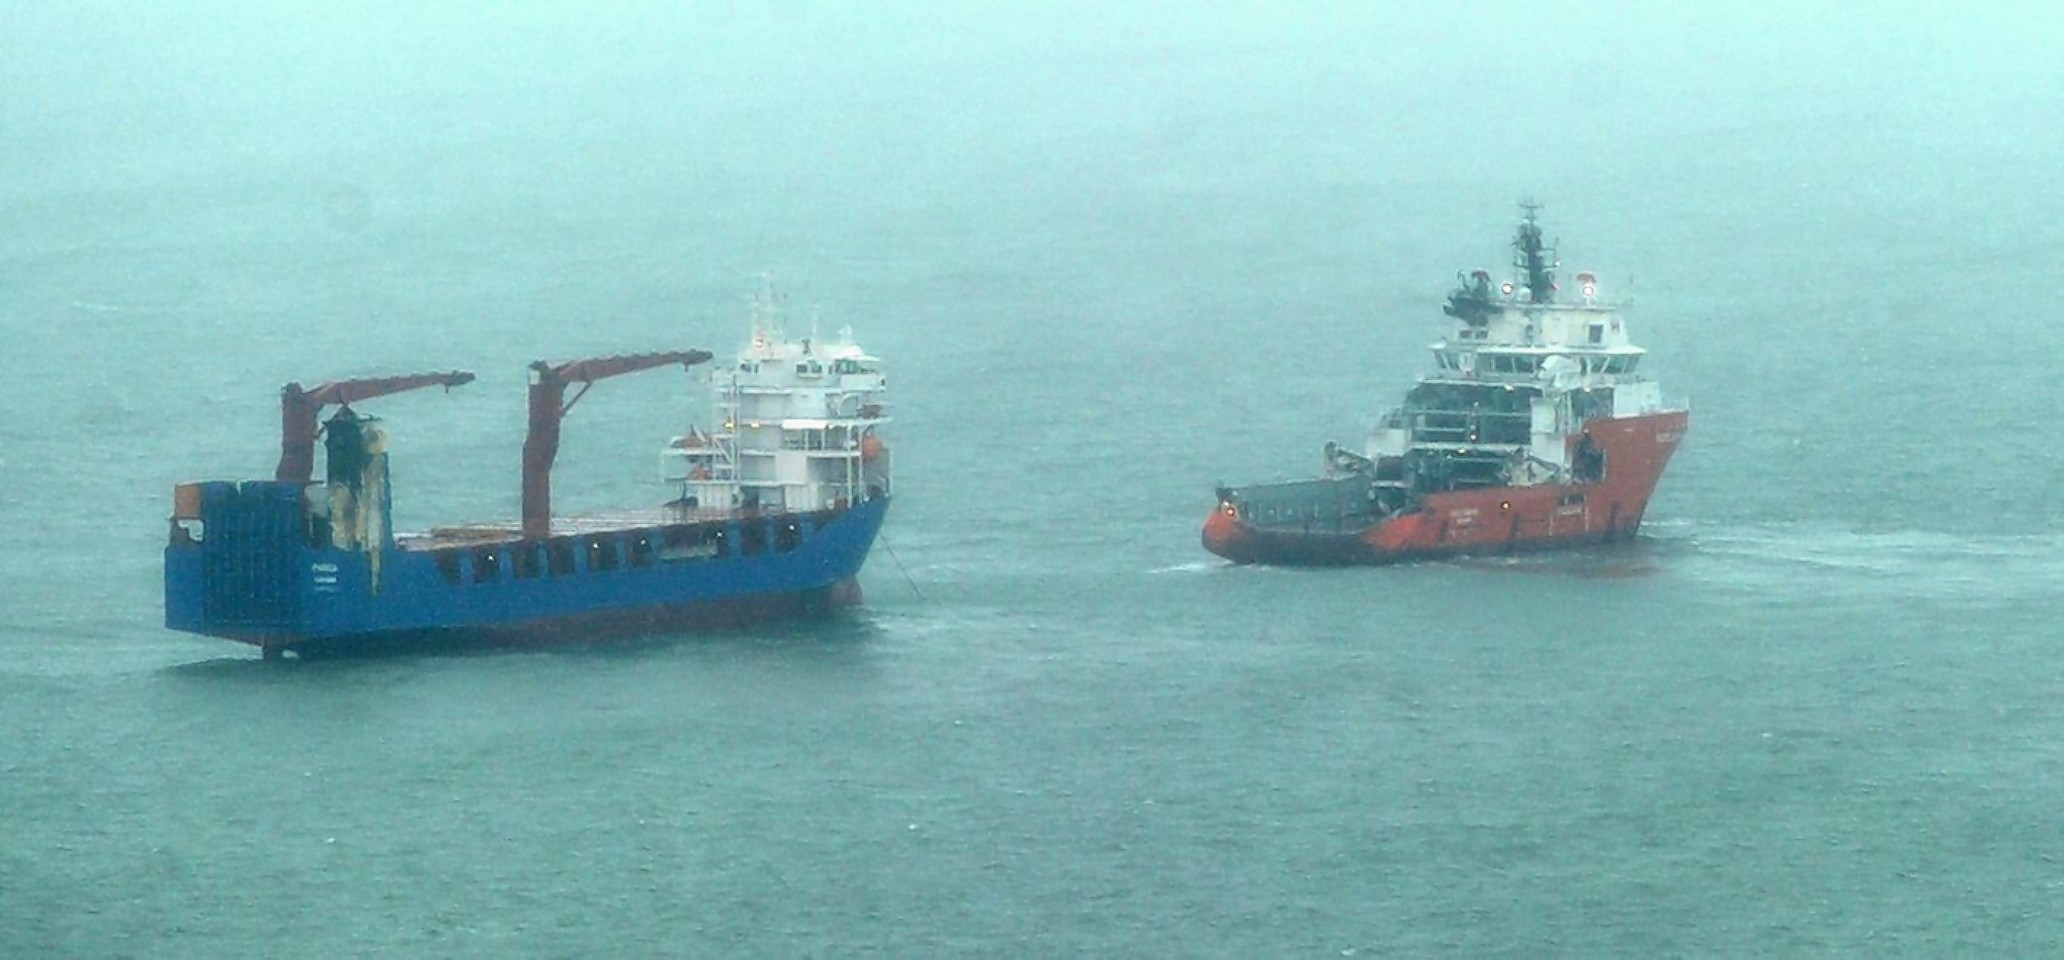 The Parida and tug boat, the Pacific  Champion